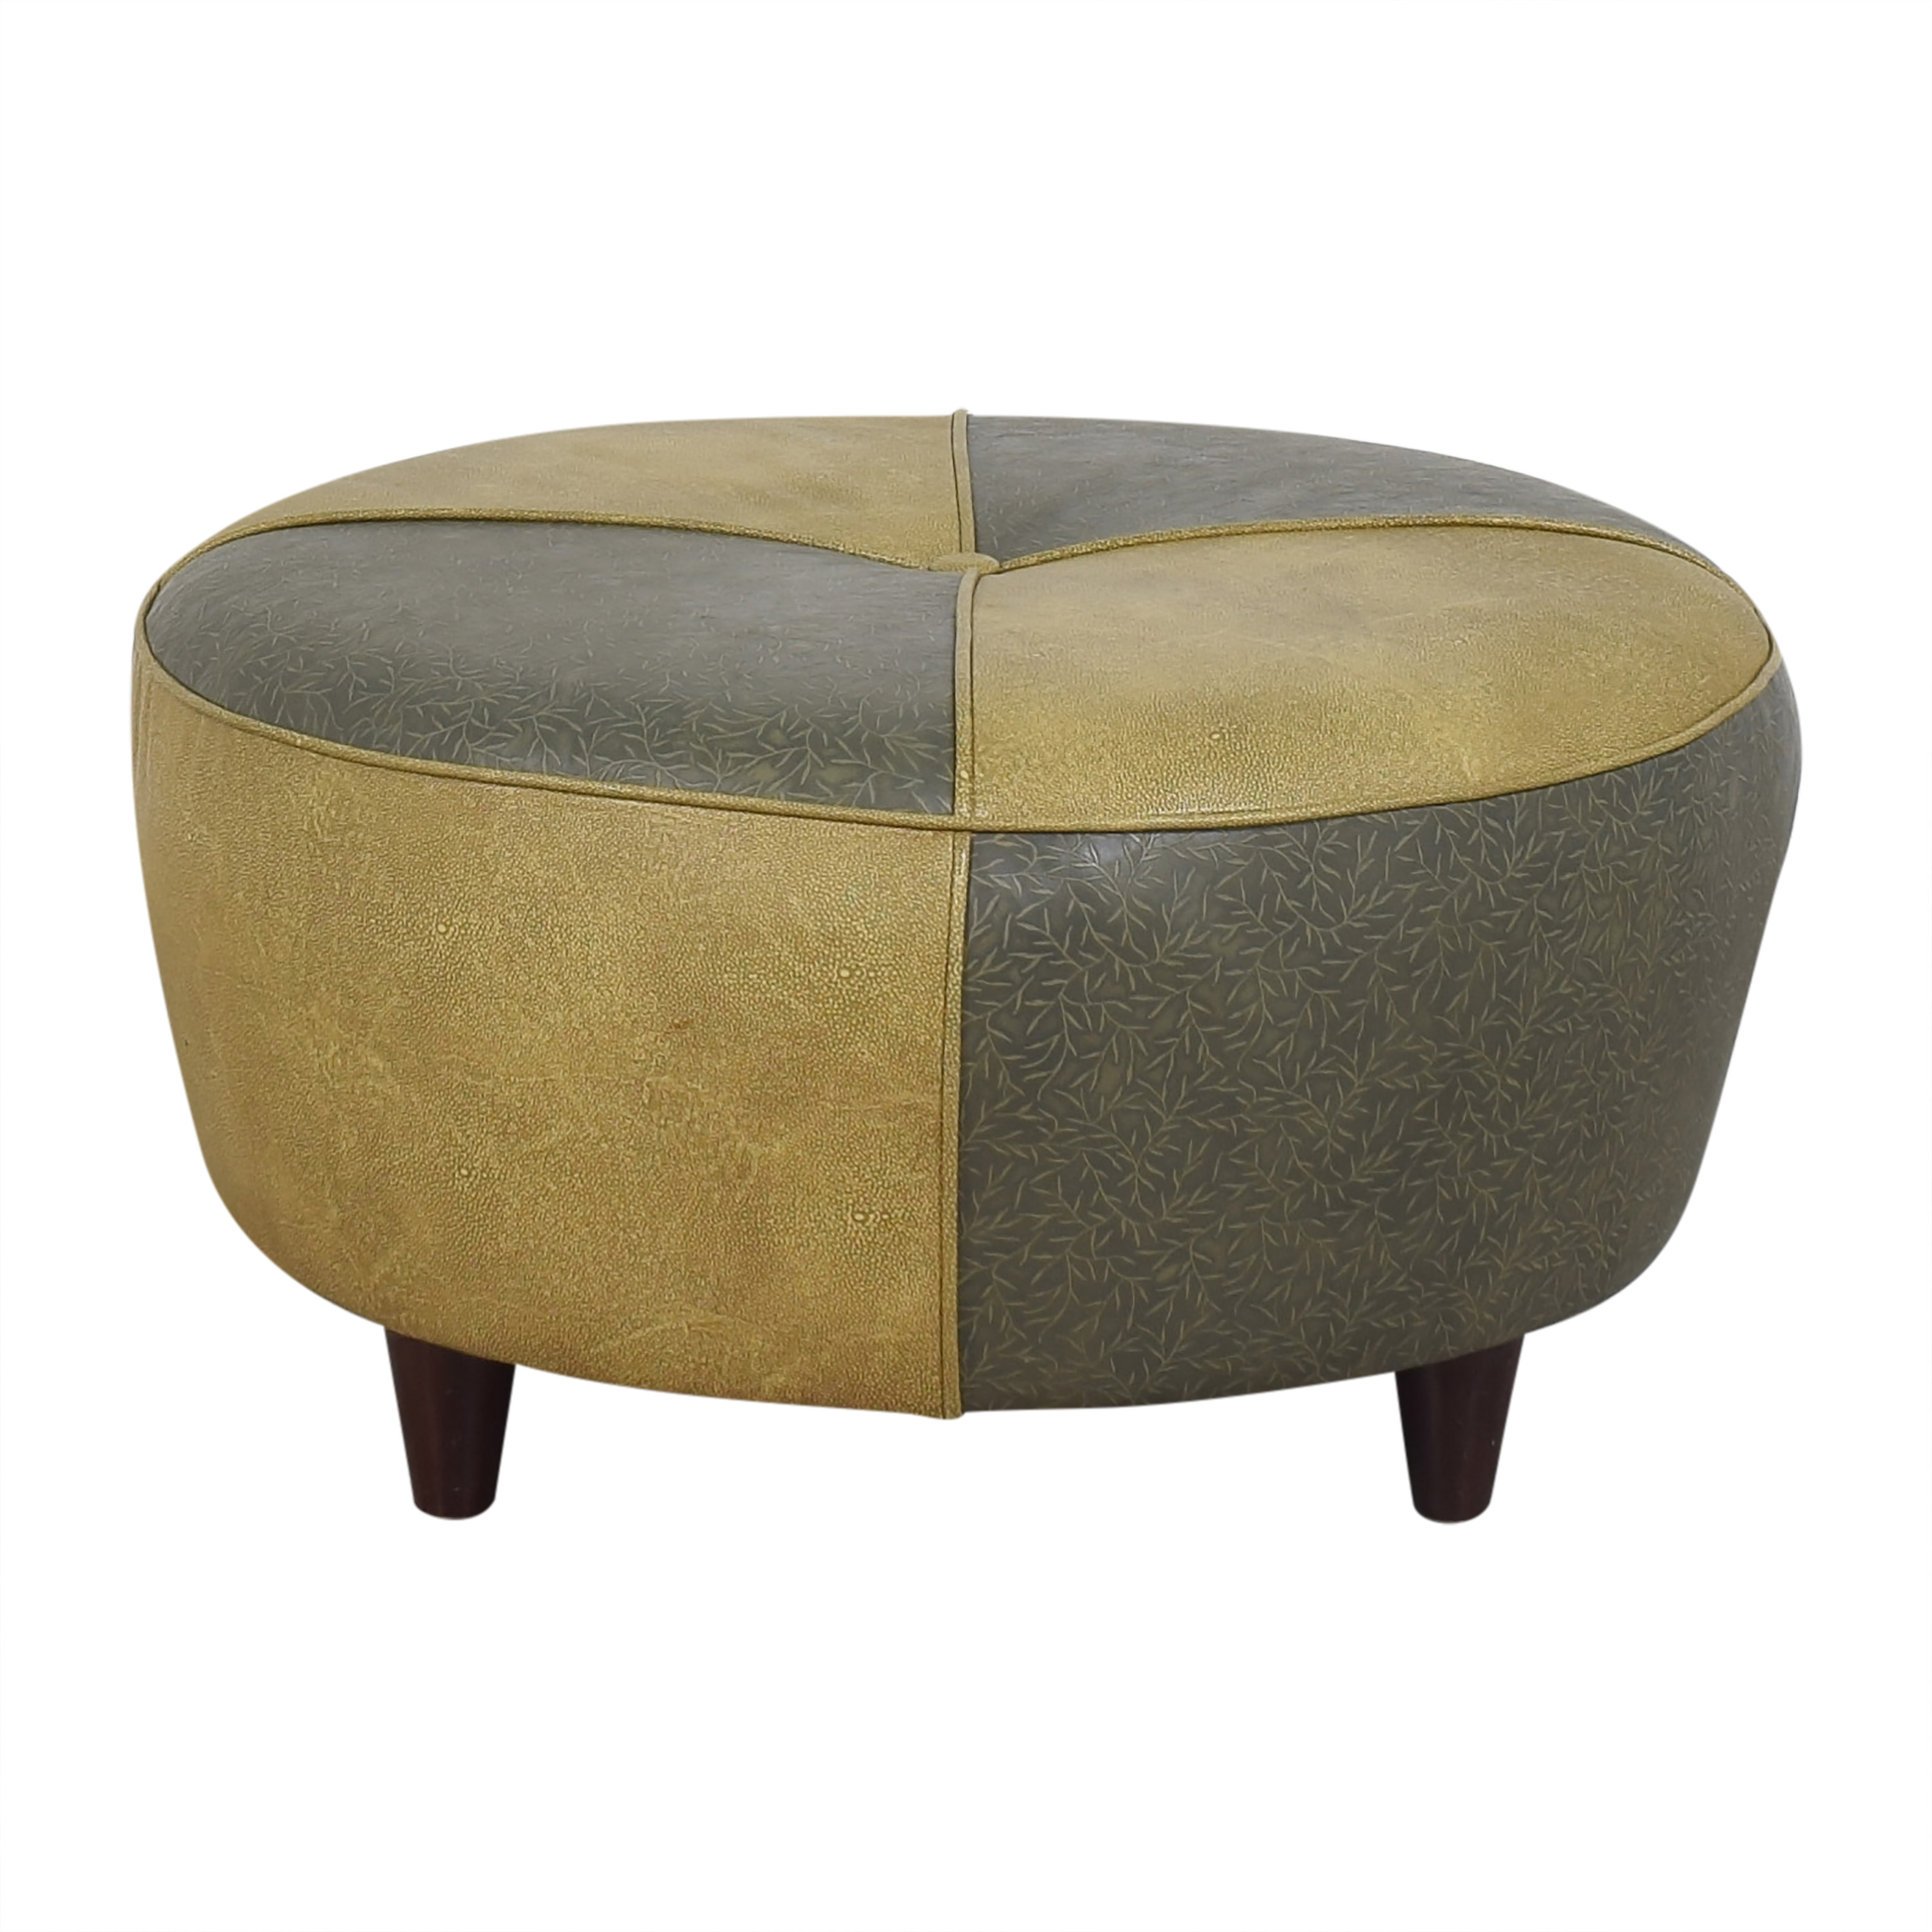 Charter Furniture Charter Furniture Two Tone Round Ottoman coupon